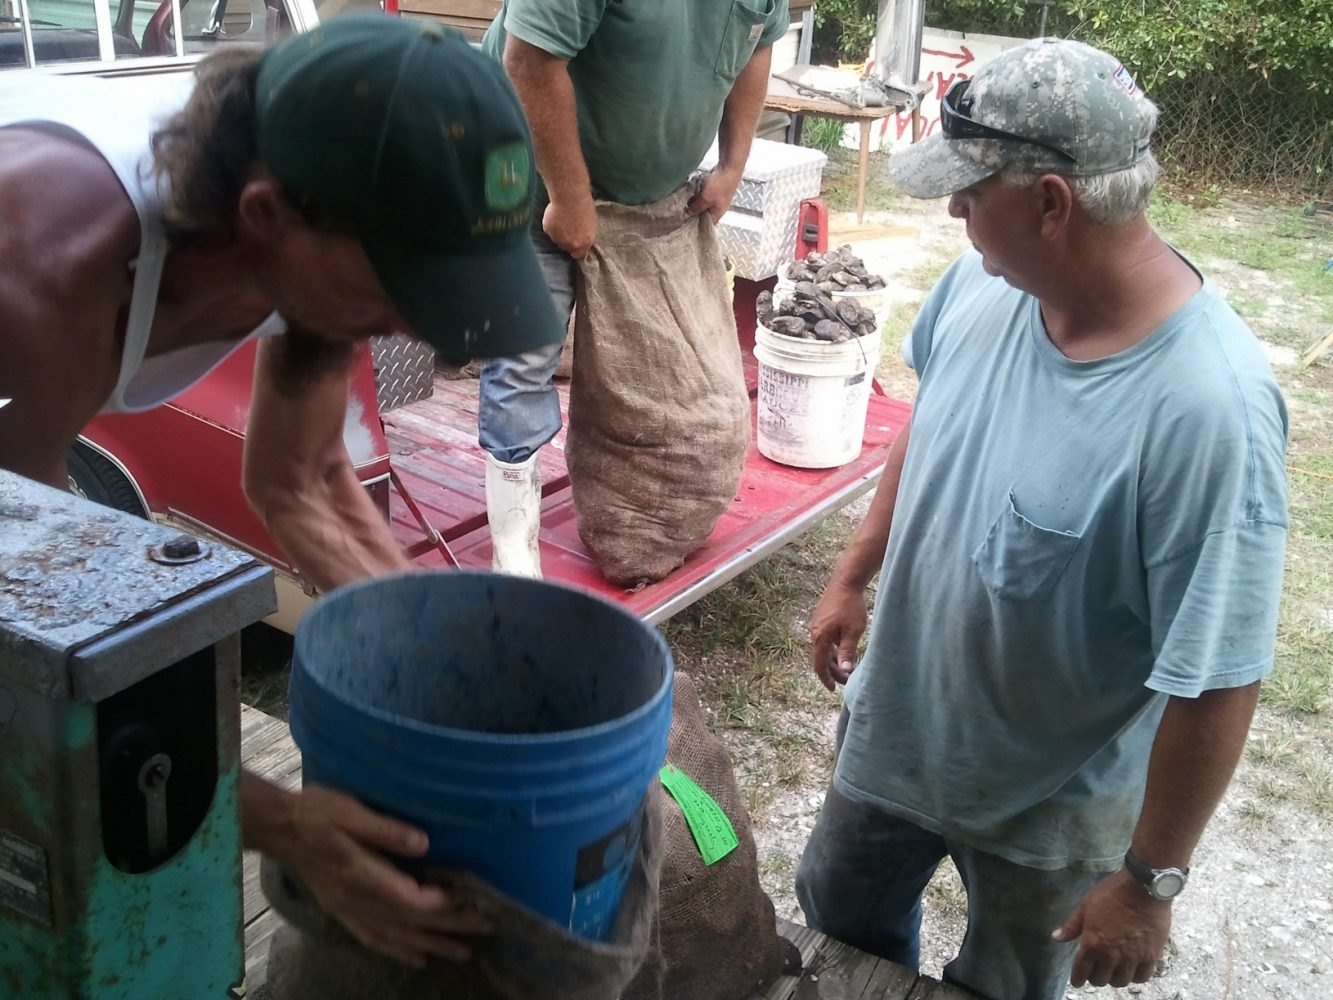 Oystermen add more oysters to make their 60-pound bushel weight requirement.